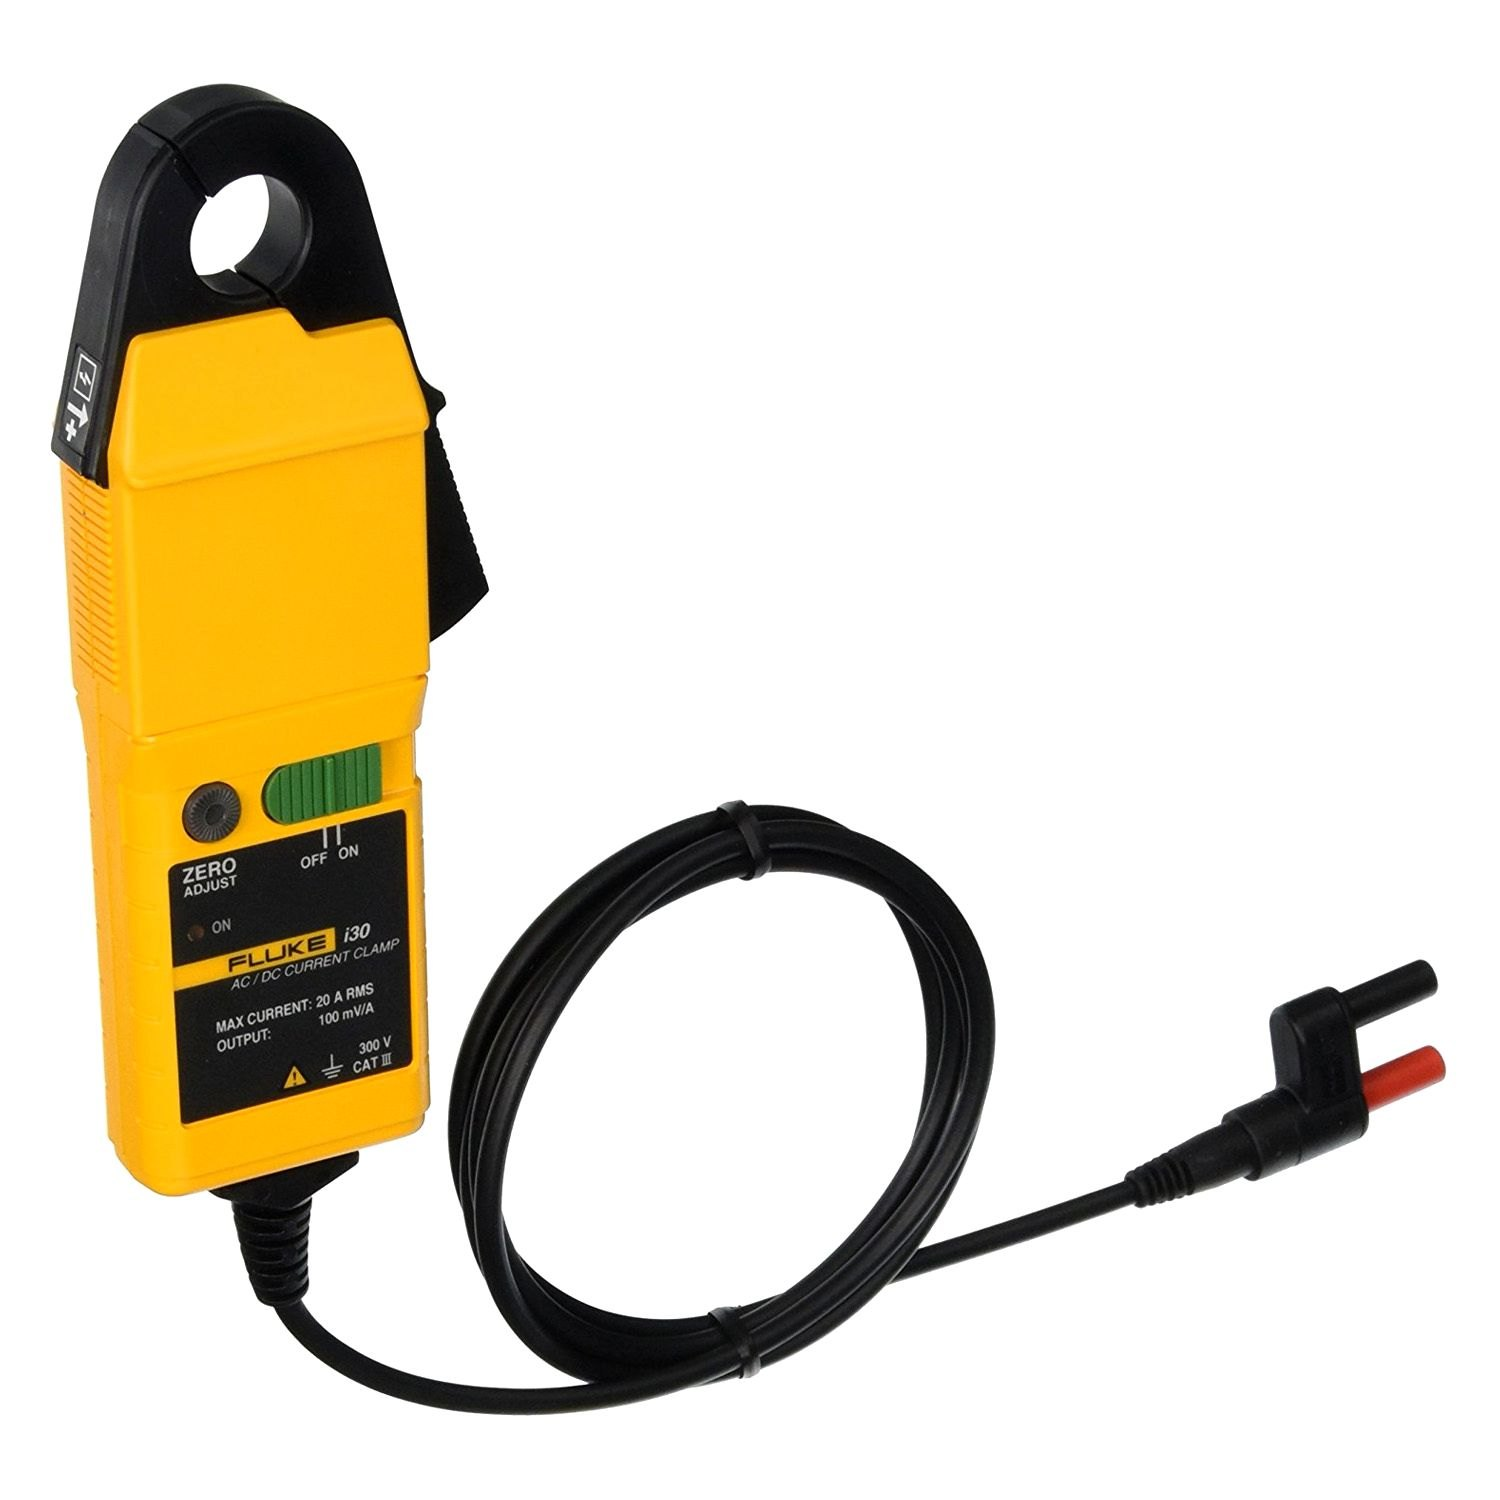 Dc Current Meter : Fluke electronics i ac dc current clamp meter